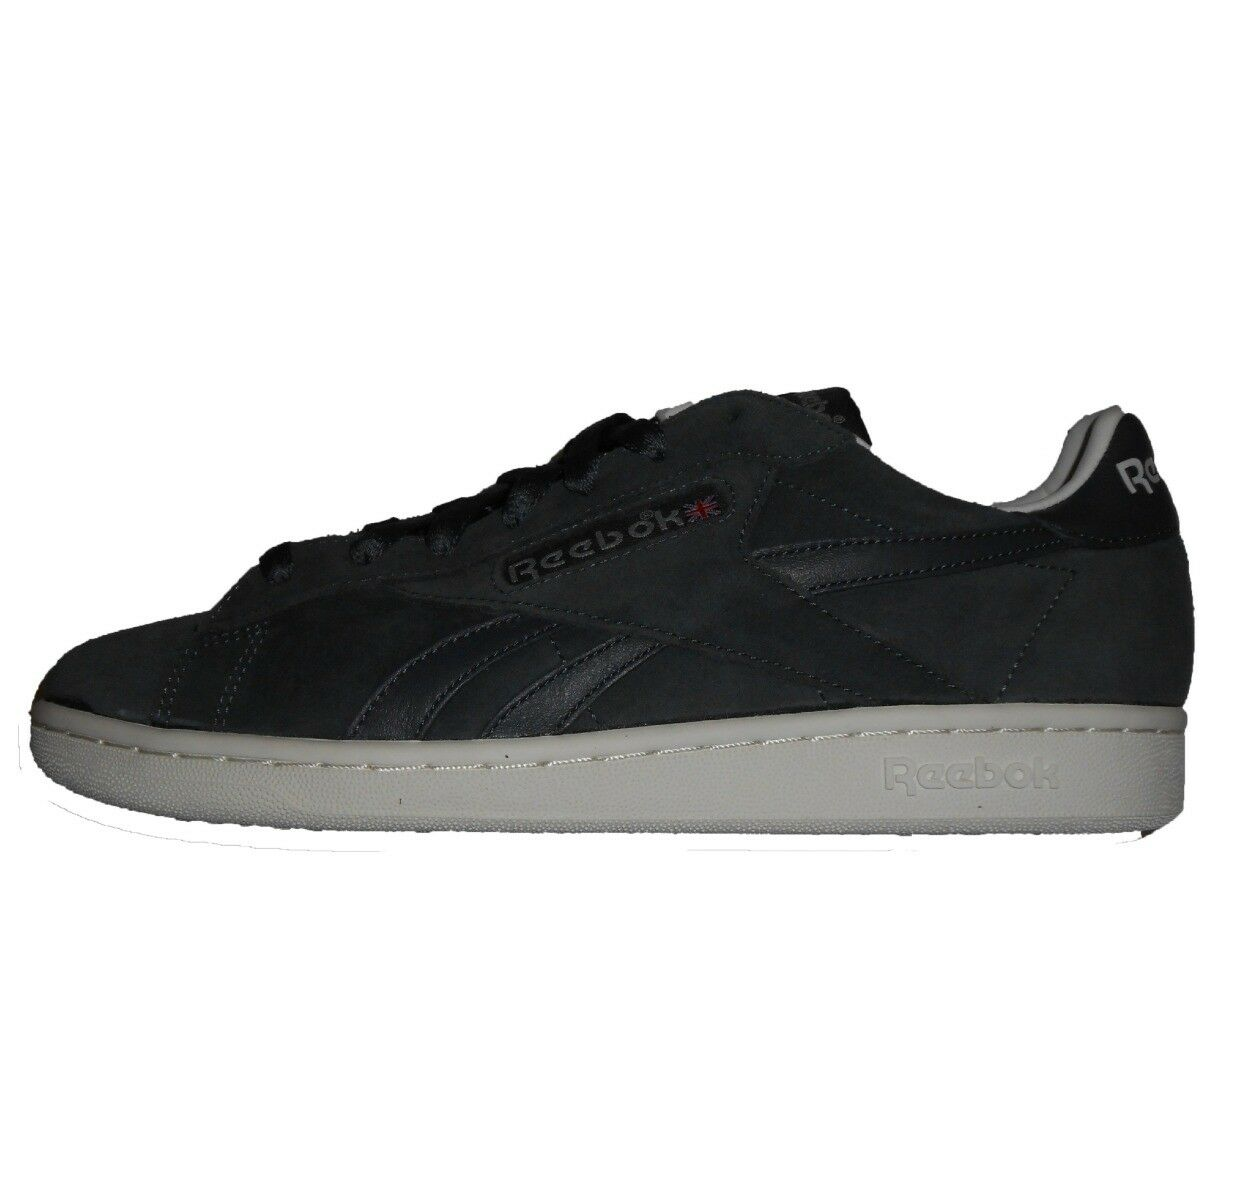 Reebok Classic NPC UK OS Mens Trainer shoes Suede Size 7 7.5 8 8.5 9 9.5 New